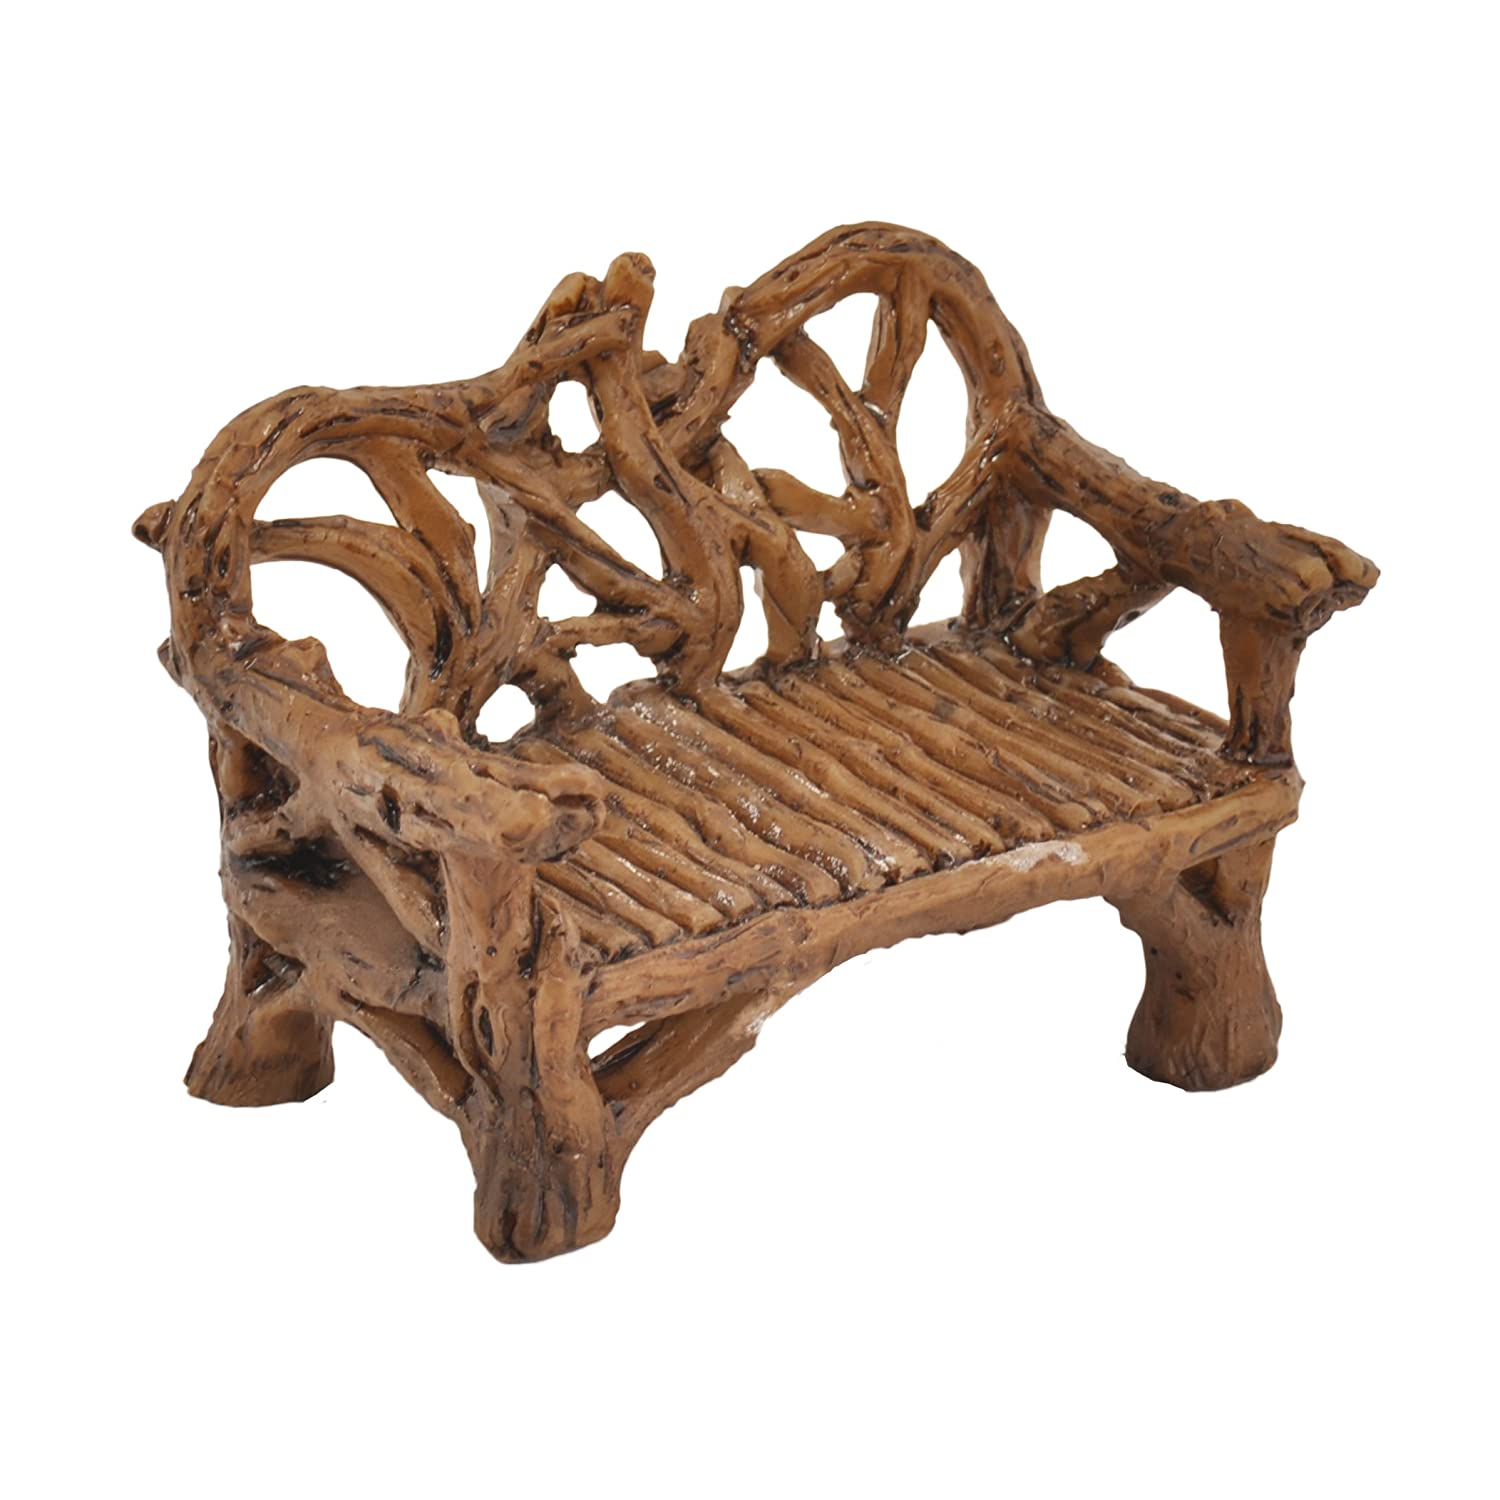 Georgetown Home & Garden Miniature Twig Bench Garden Decor